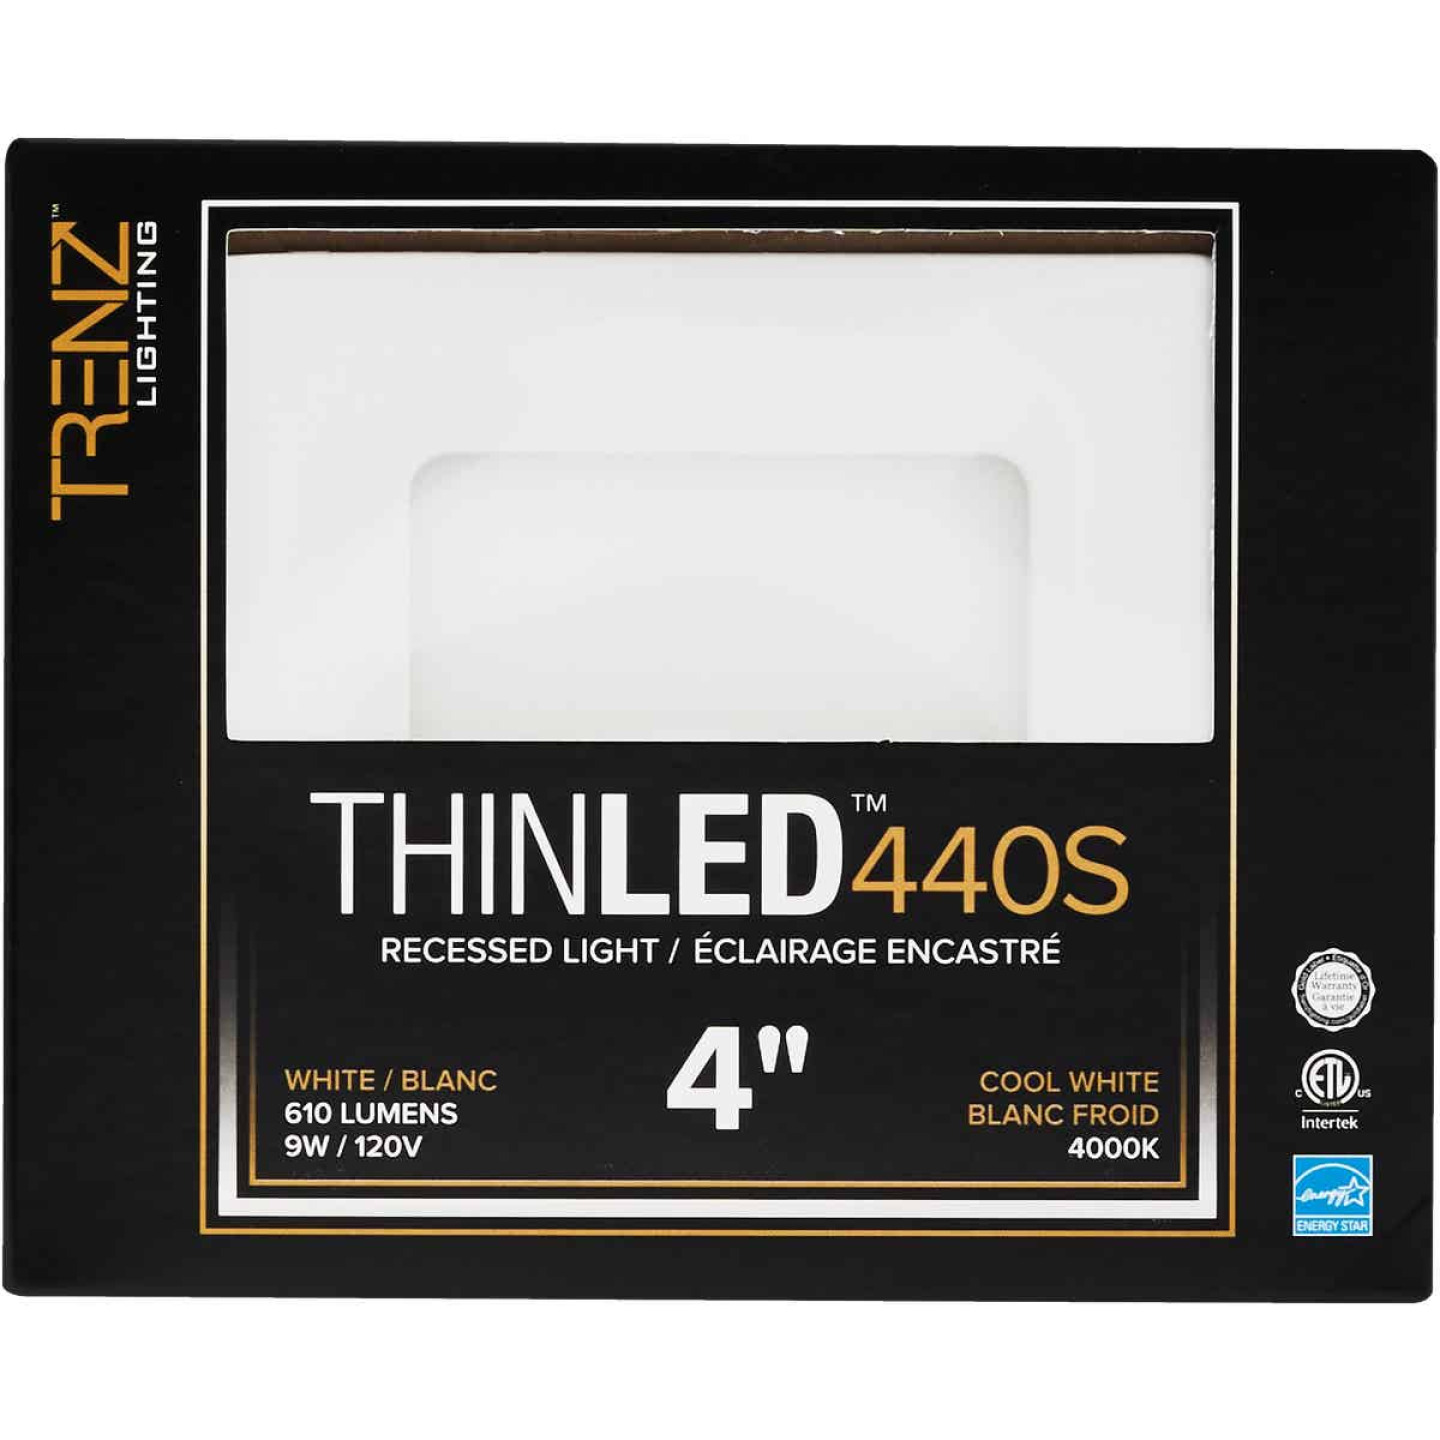 Liteline Trenz ThinLED 4 In. New Construction/Remodel IC White 610 Lm. 4000K Square Recessed Light Kit Image 2